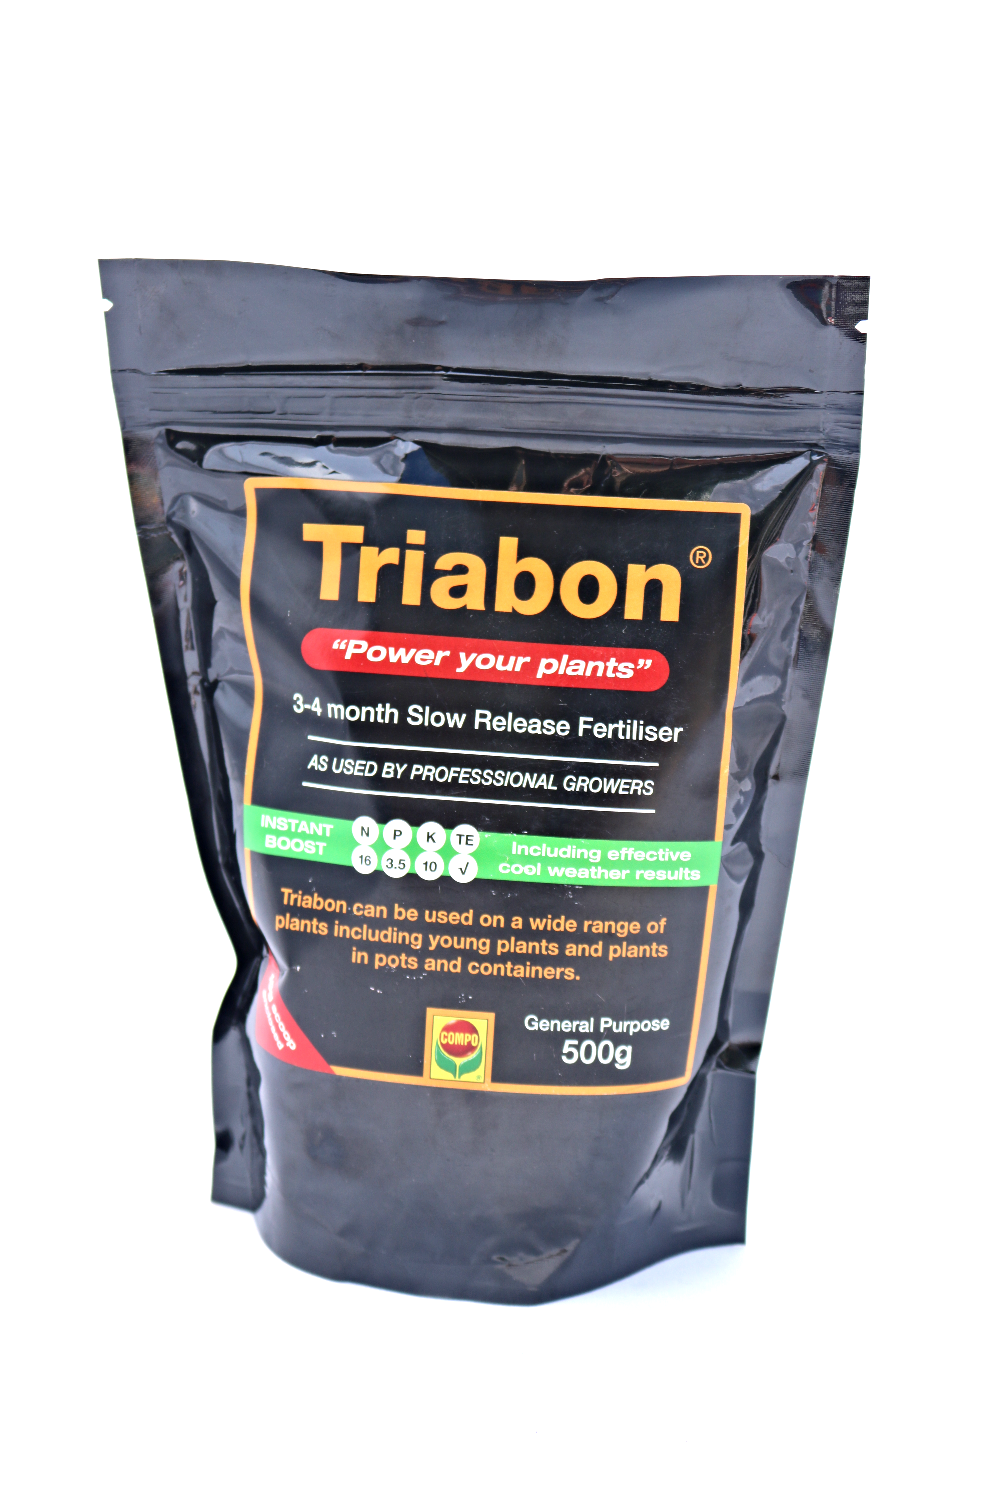 Best Pot Fertiliser: Triabon